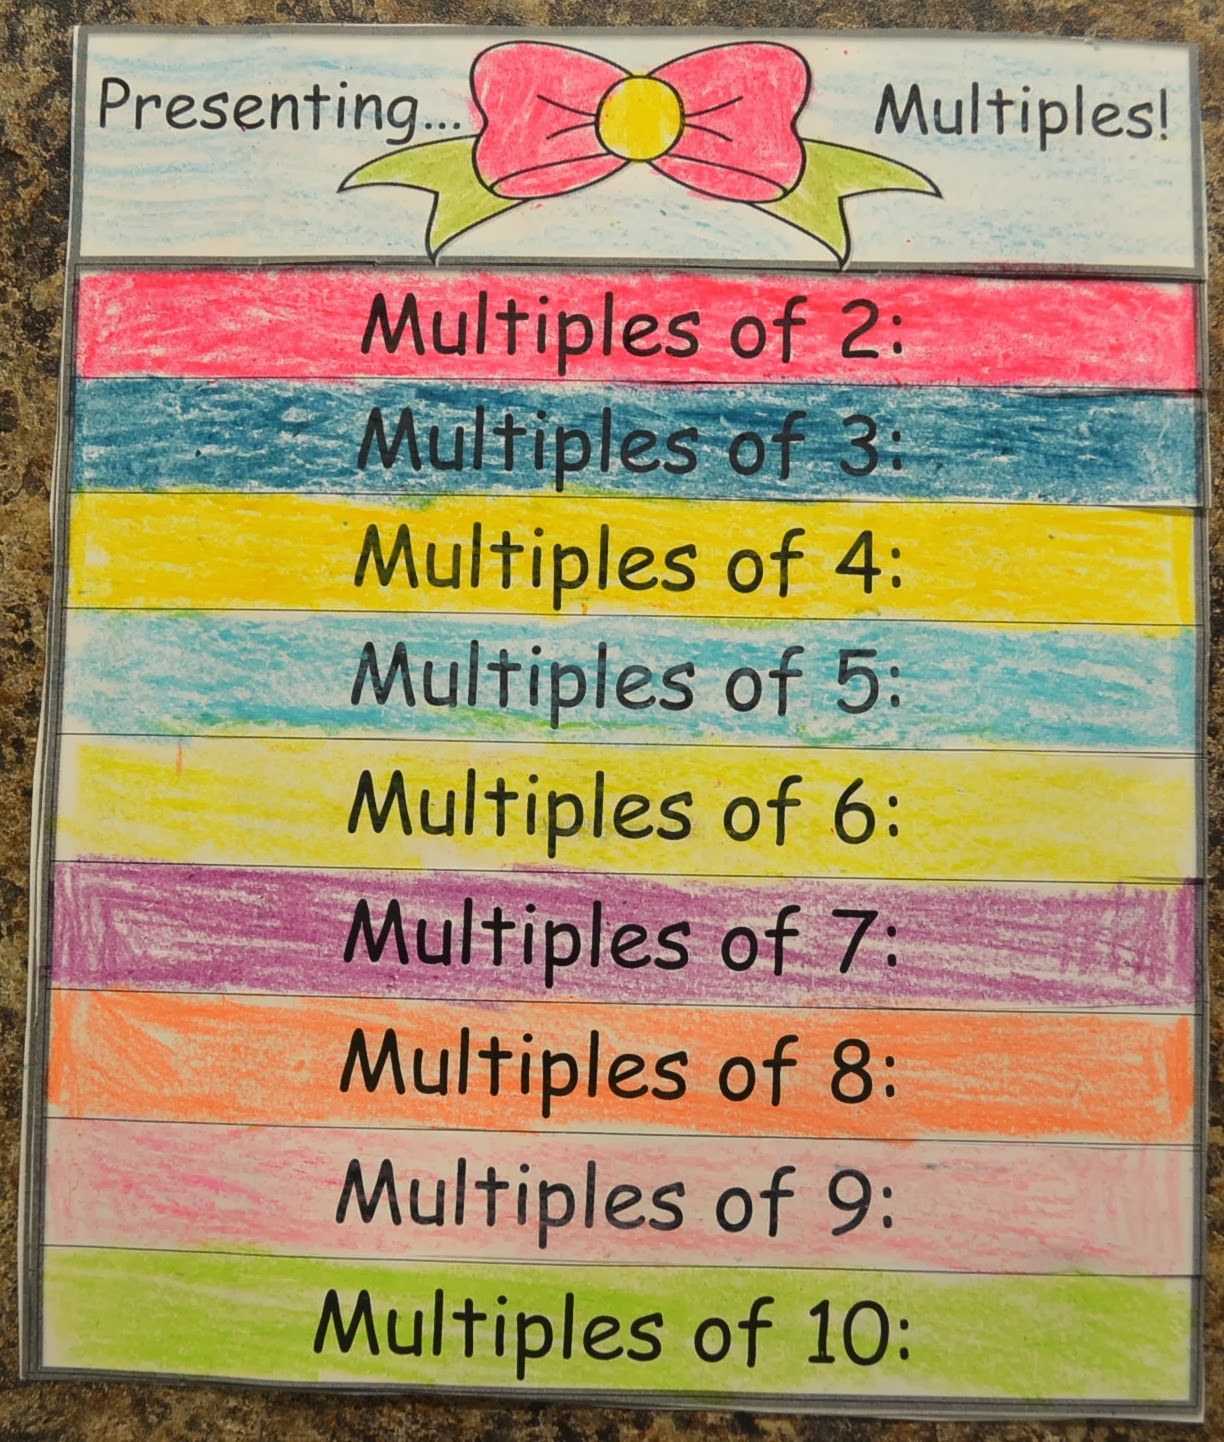 Love2learn2day Factors Amp Multiples Flap Books Amp Online Games